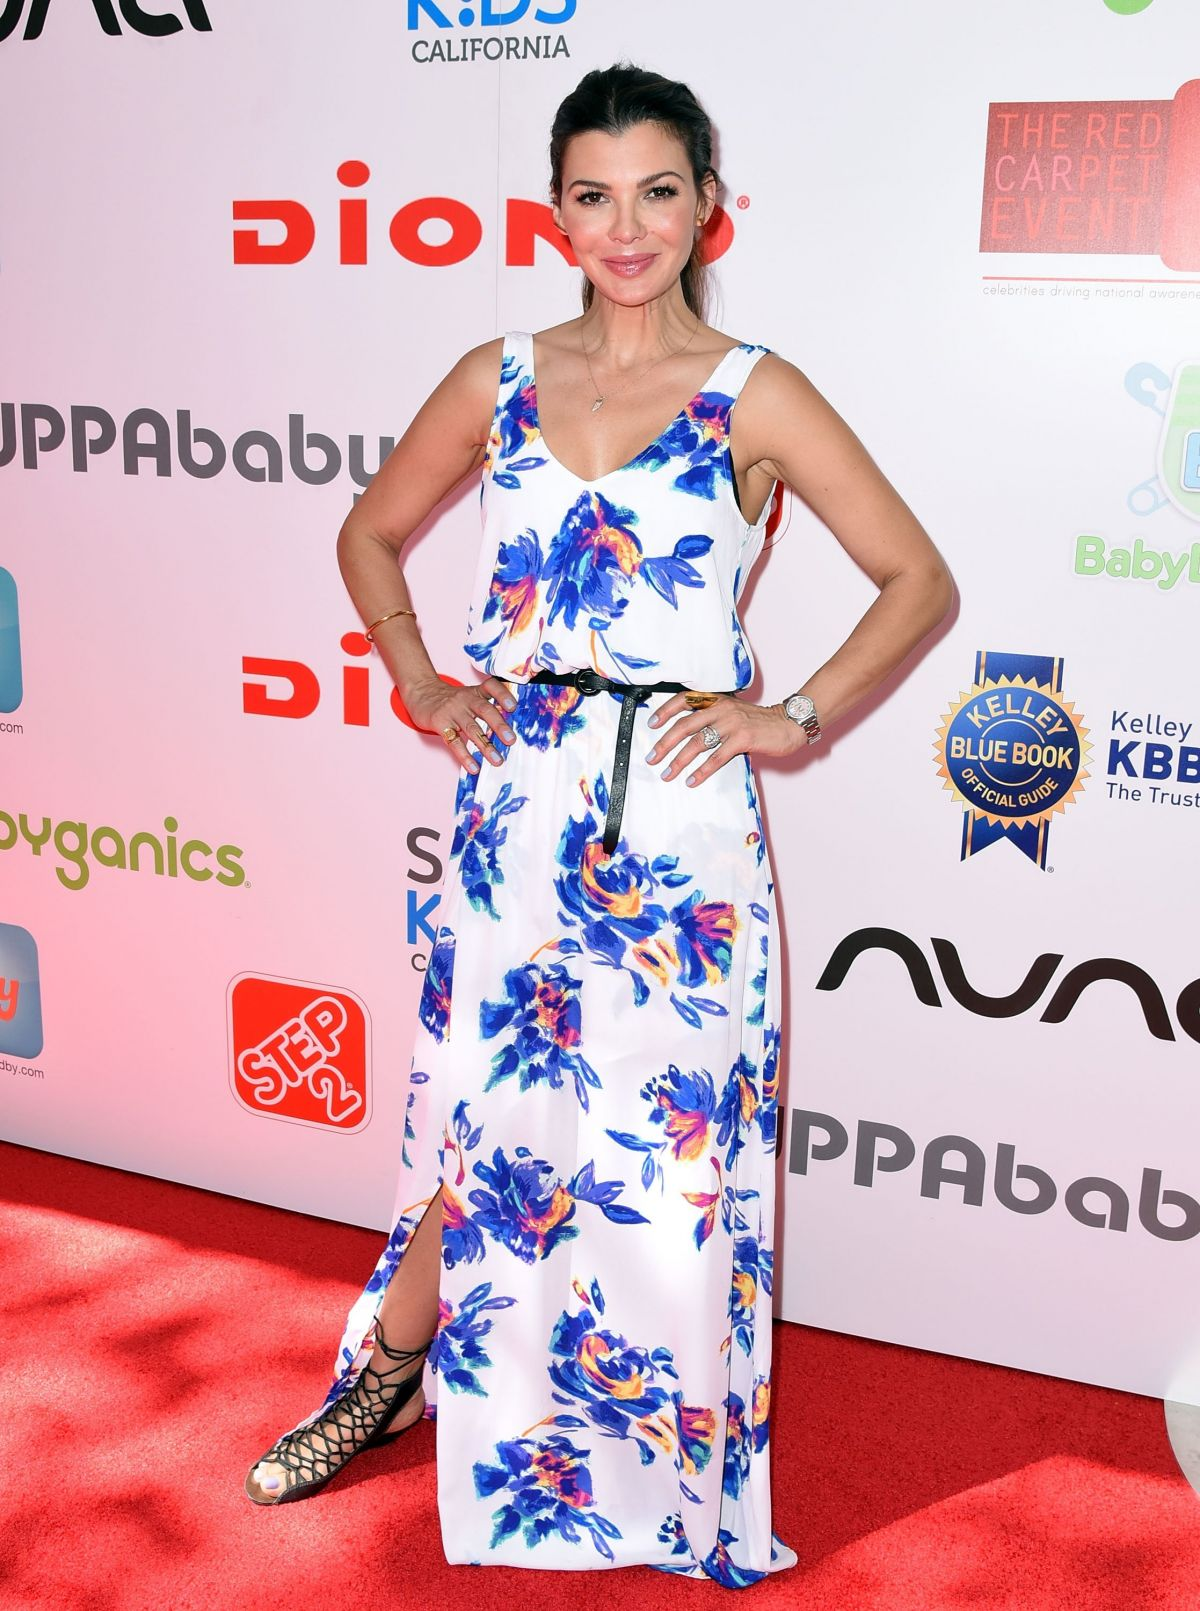 ALI LANDRY at 4th Annual Red Carpet Safety Awareness Event in Los Angeles 09/19/2015